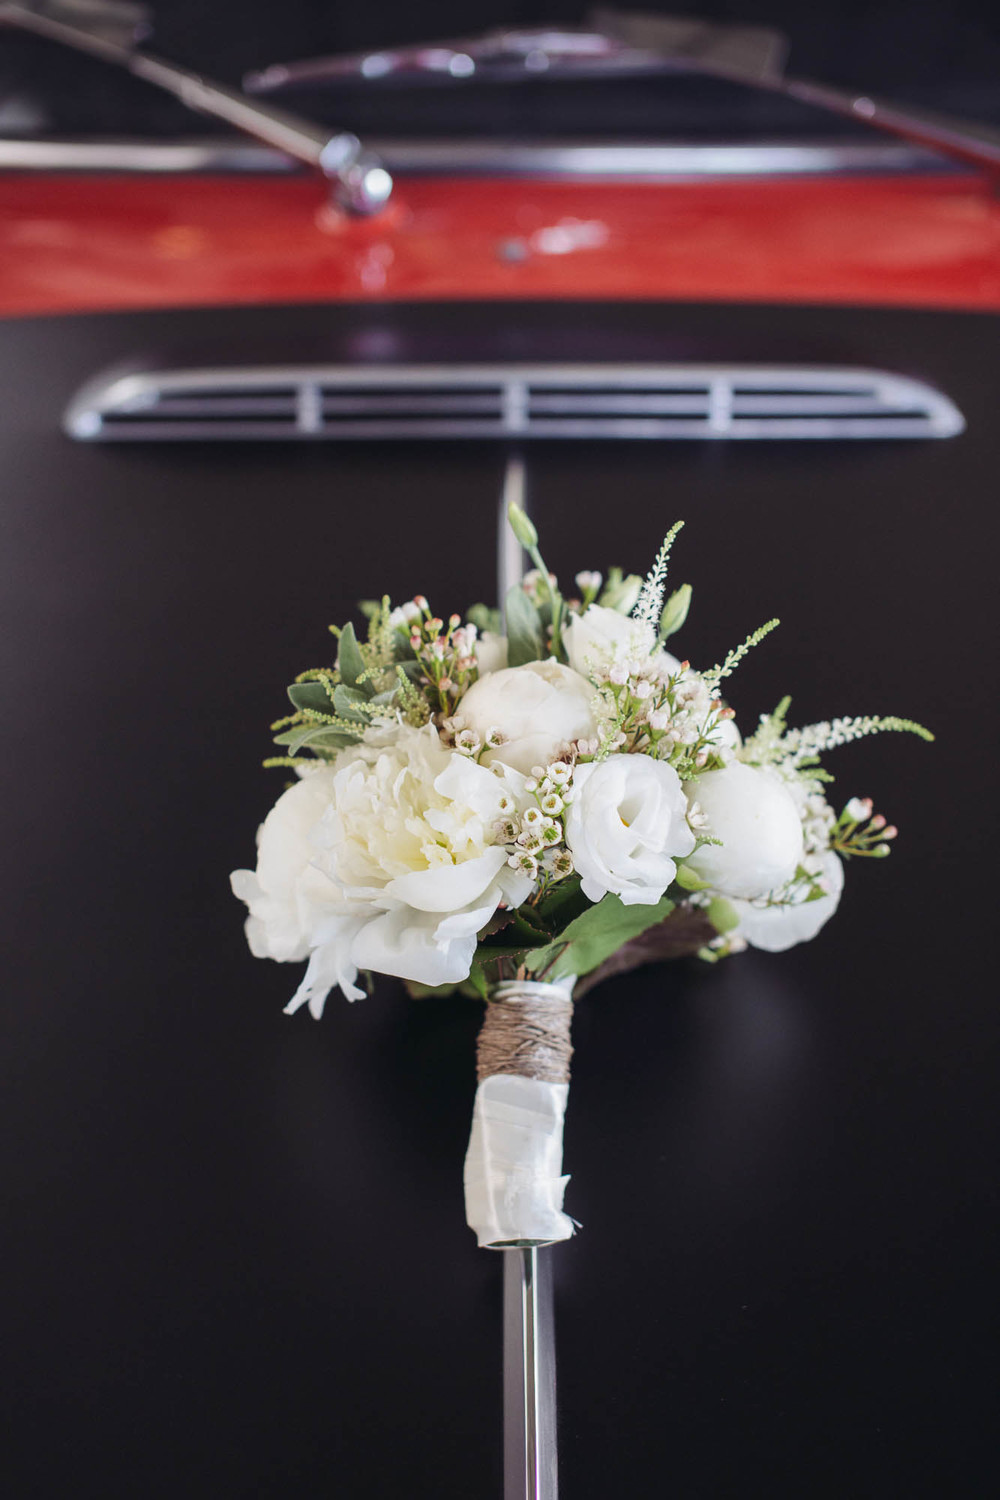 creative bouquet wedding lancia fulvia.jpg